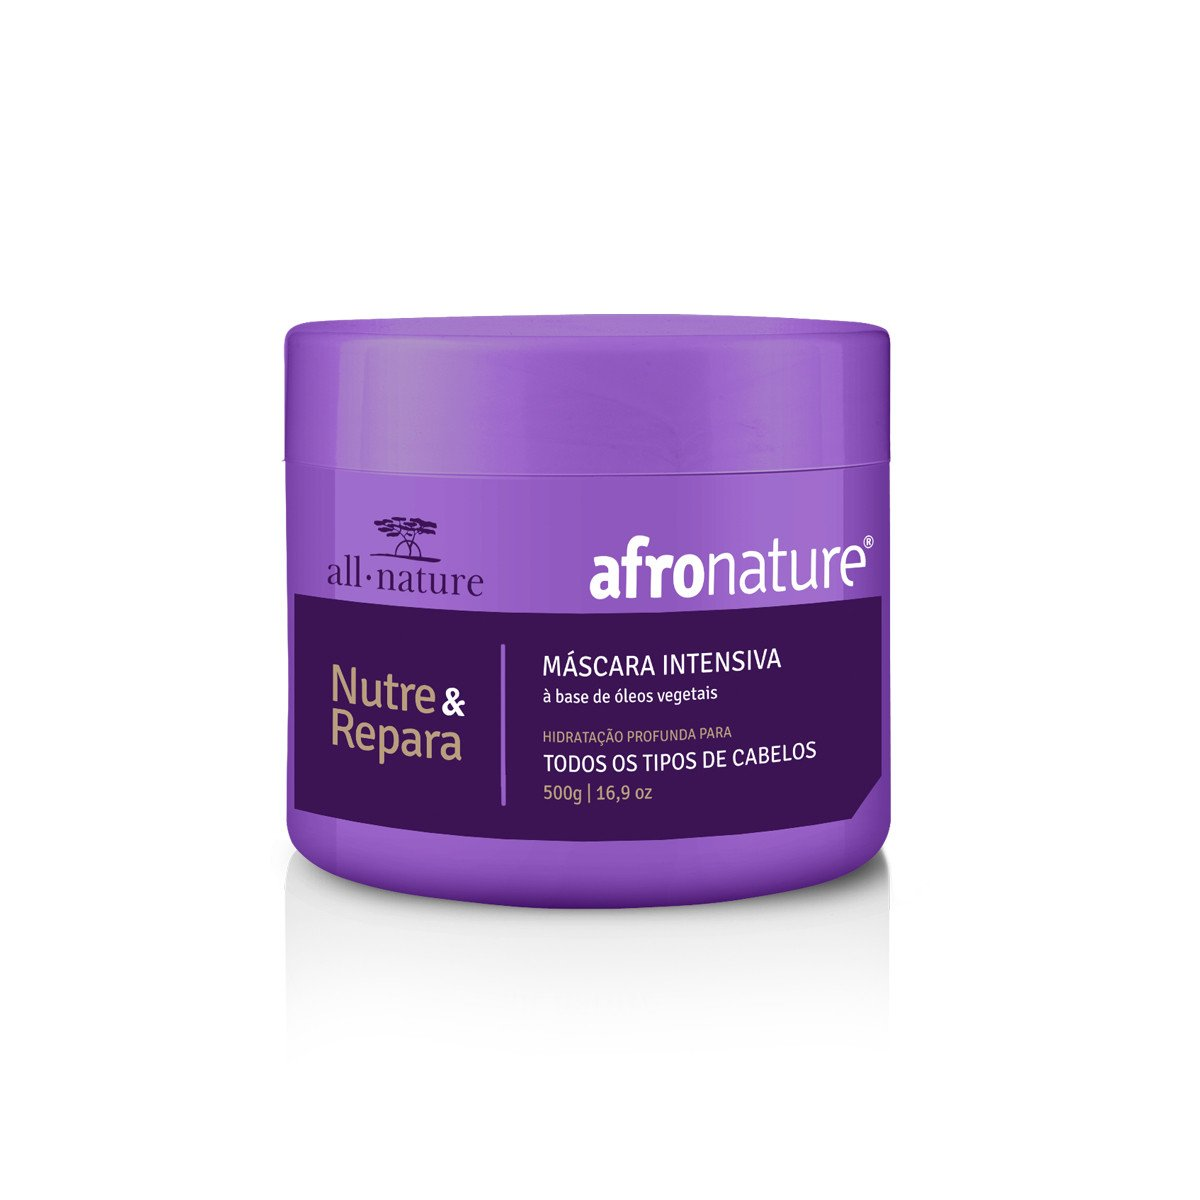 All Nature Hair Mask Hydration Moisturizing Nourishing Repair Afro Intensive Mask 500g - All Nature